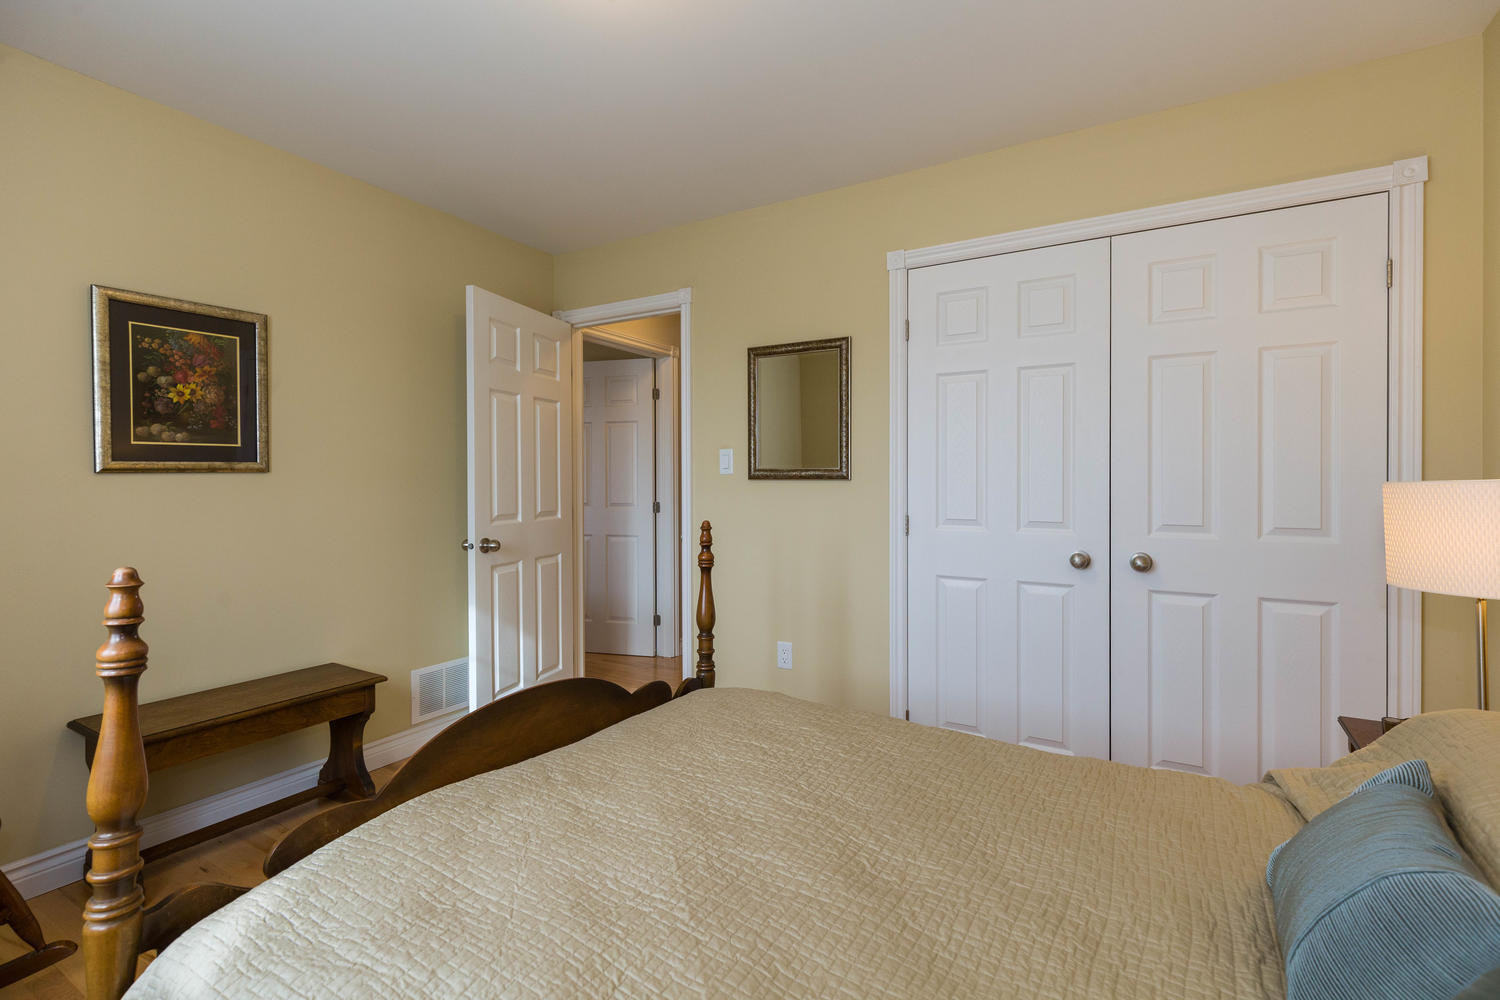 The second bedroom on the main level.